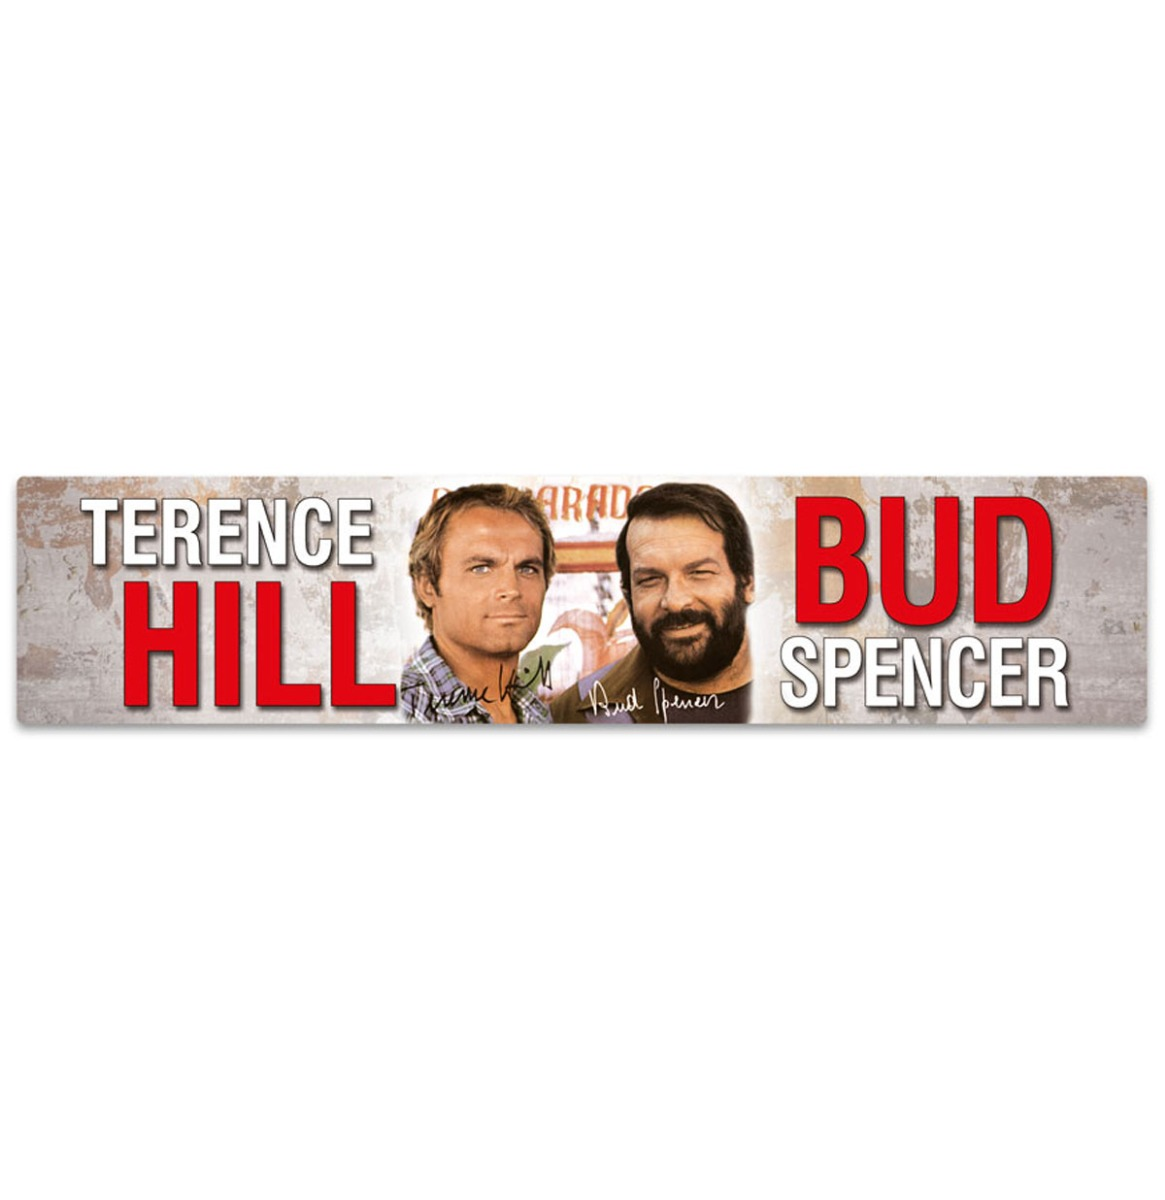 Bud Spencer Terence Hill Street Sign Magneet 16 x 3,5 cm